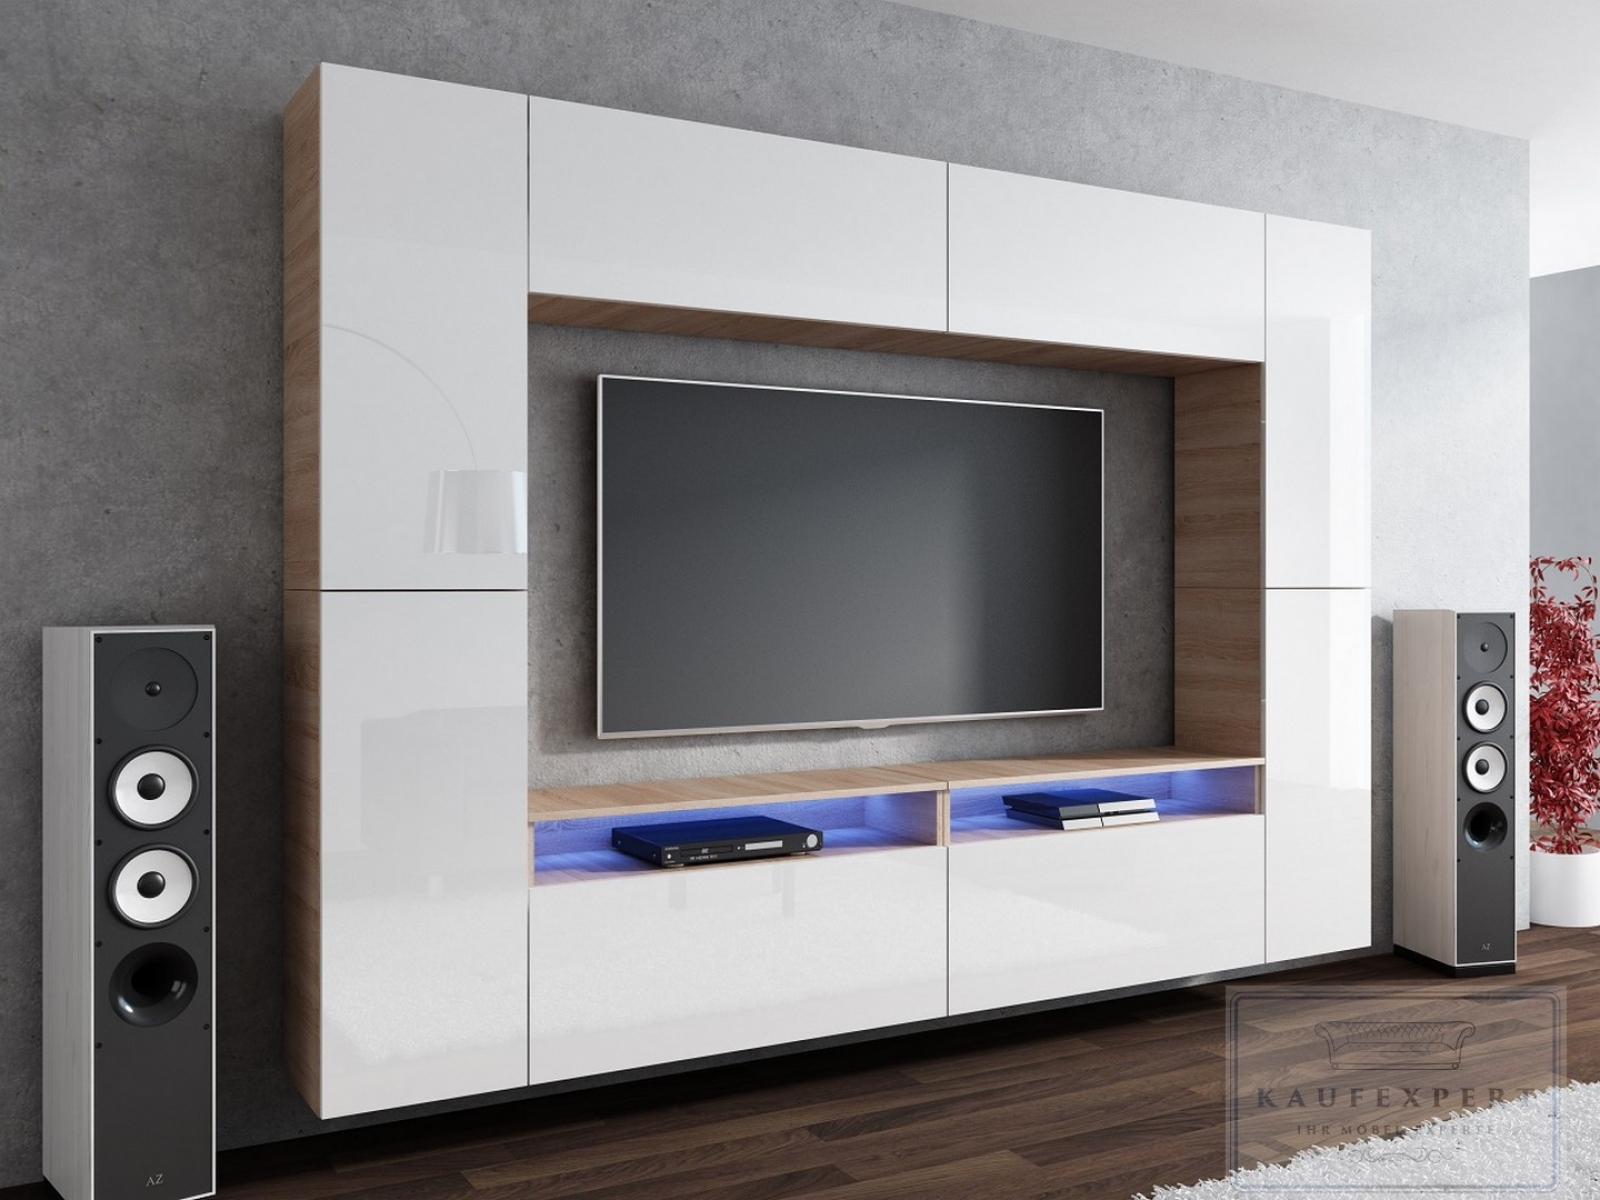 kaufexpert wohnwand cinema wei hochglanz sonoma eiche mediawand medienwand design modern led. Black Bedroom Furniture Sets. Home Design Ideas